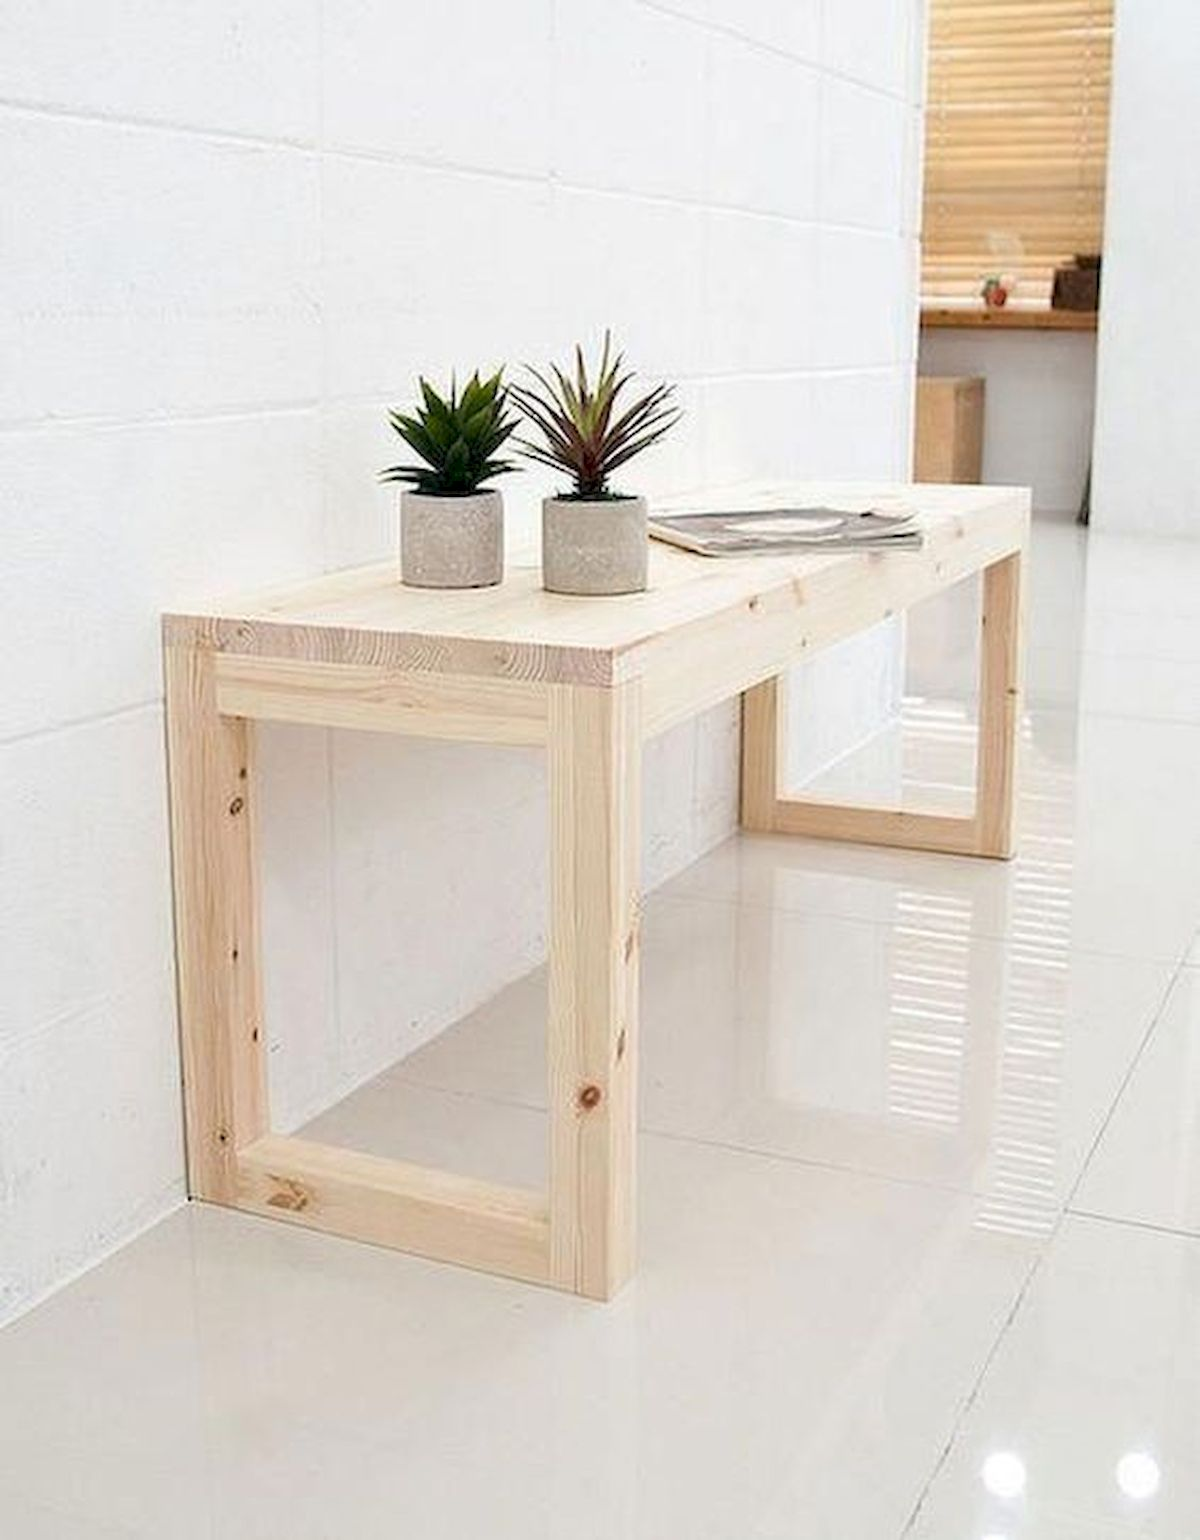 45 Awesome Furniture Ideas for Small House With Wood Project Ideas (24)